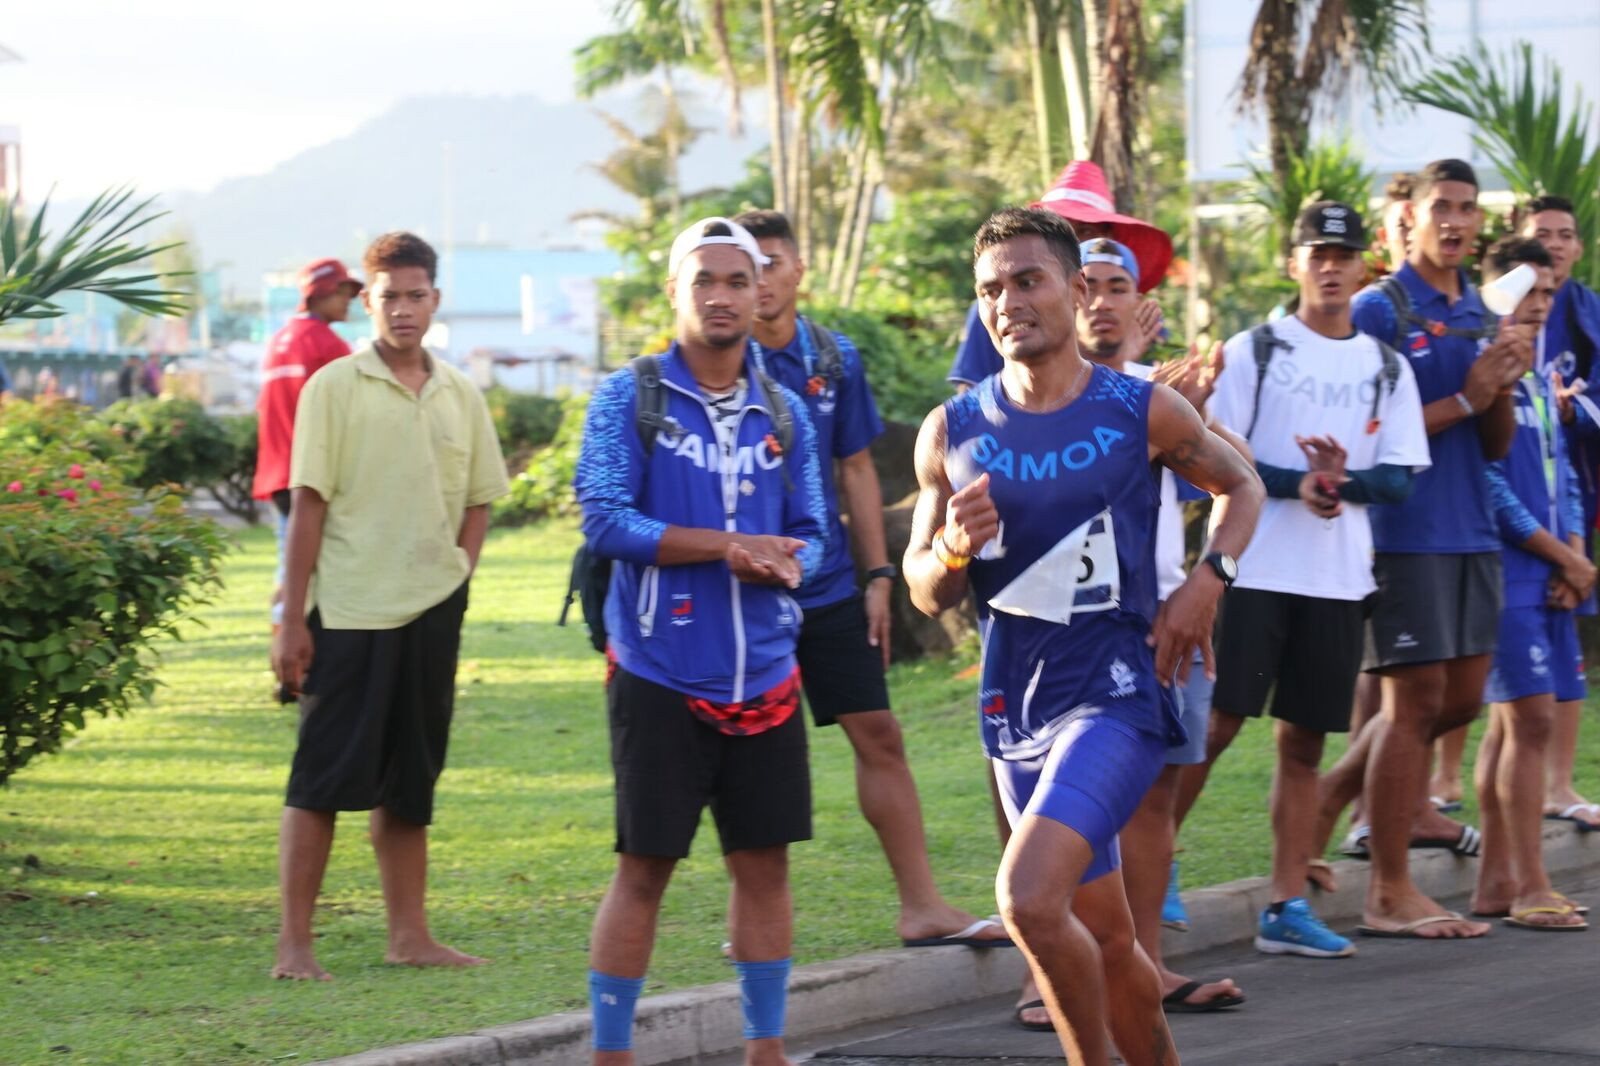 Samoa 2019: Day 12 of competition